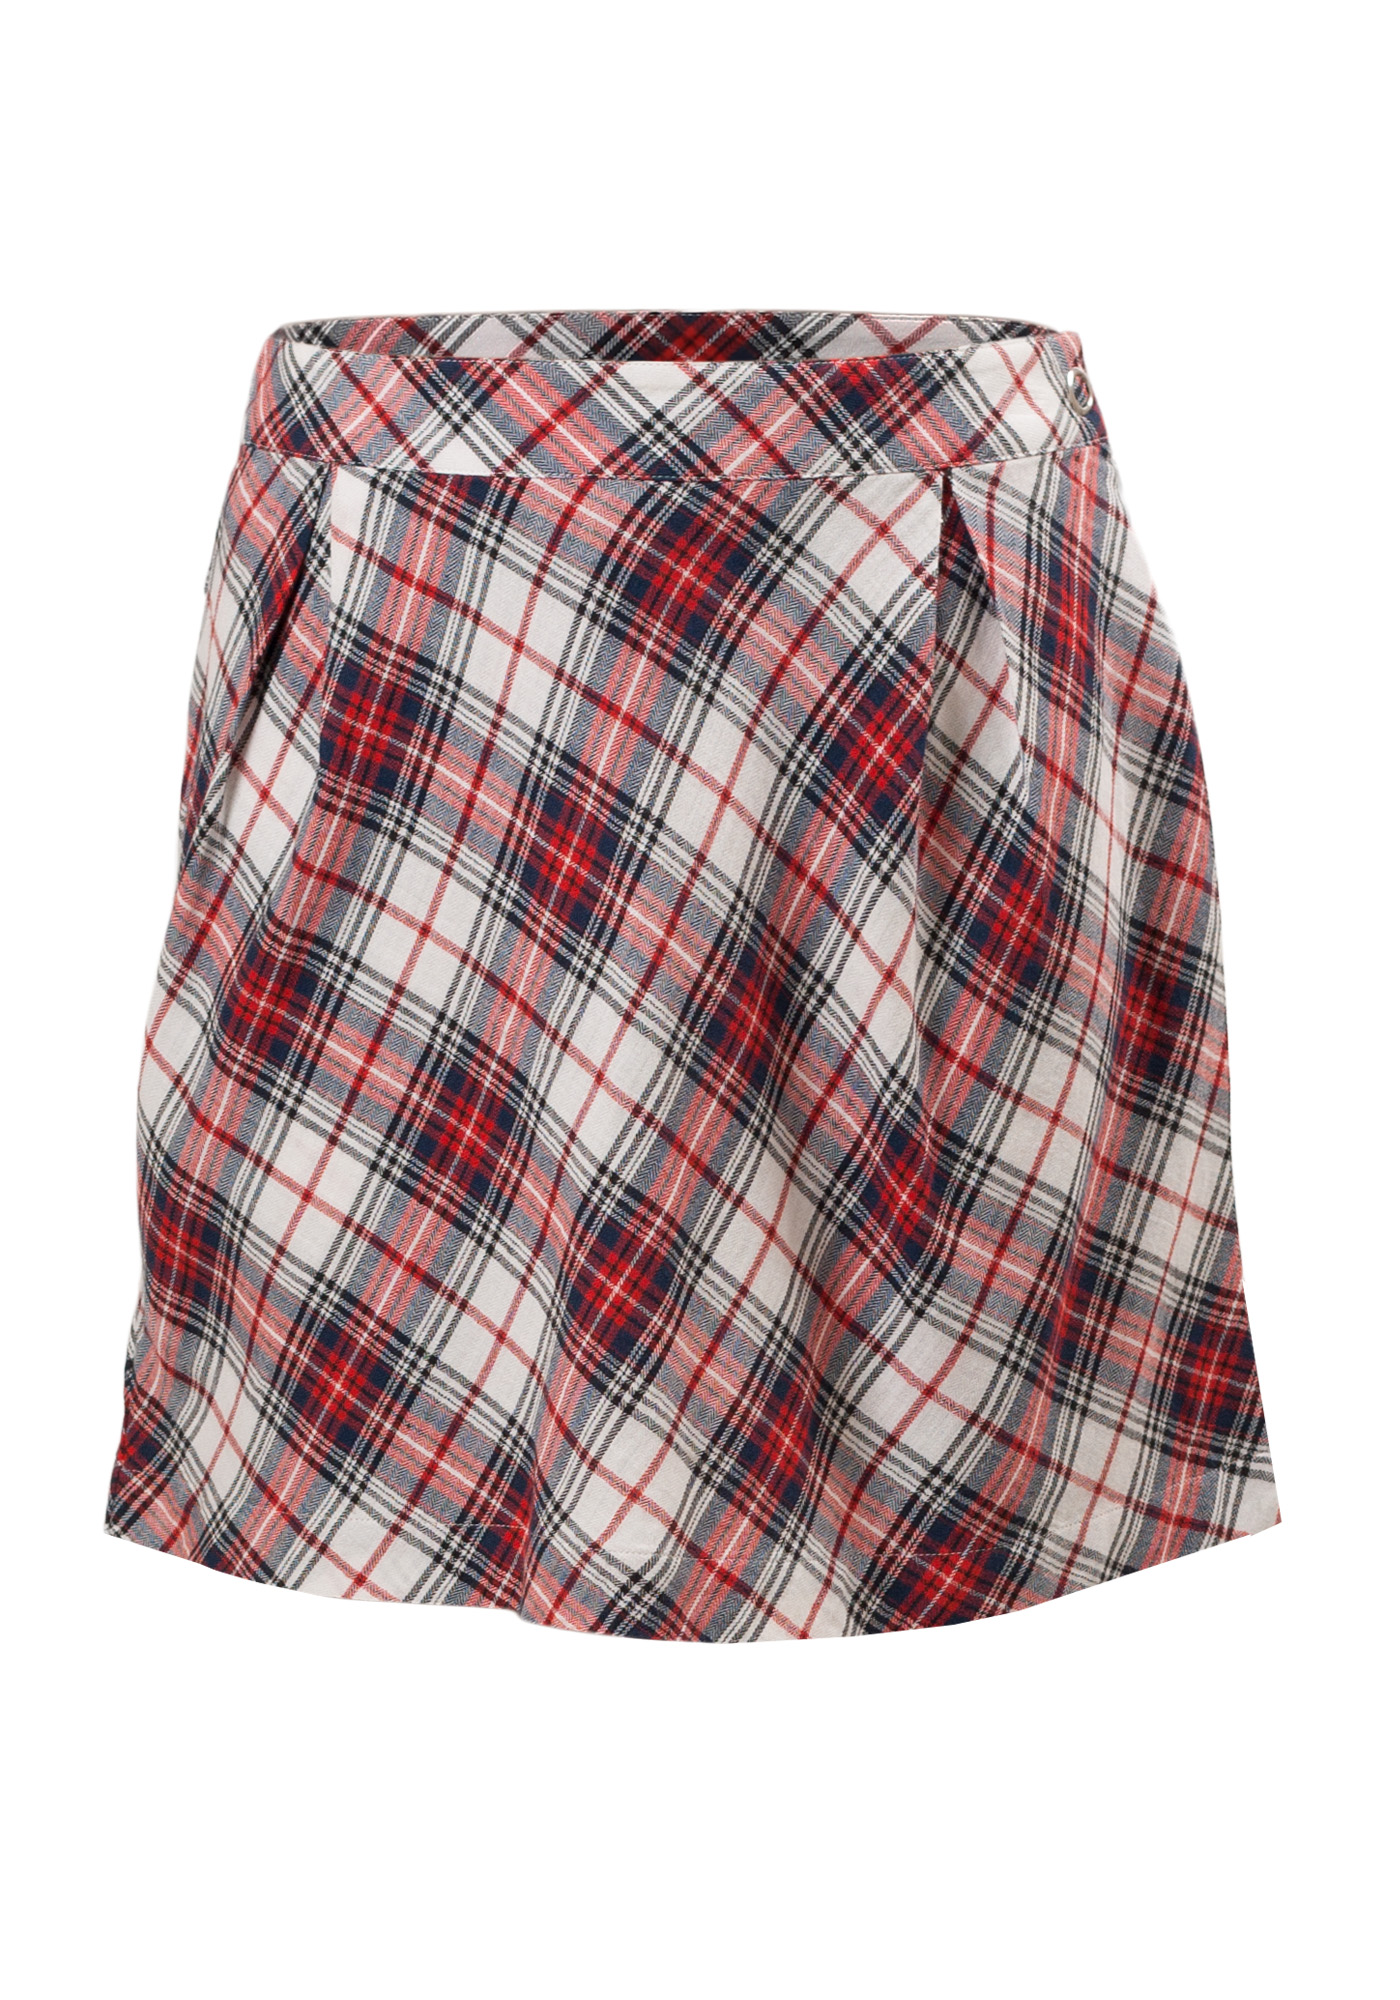 MINC Petite Tartan Girls Skorts in Red, White and Blue Yarn Dyed Cotton Checks